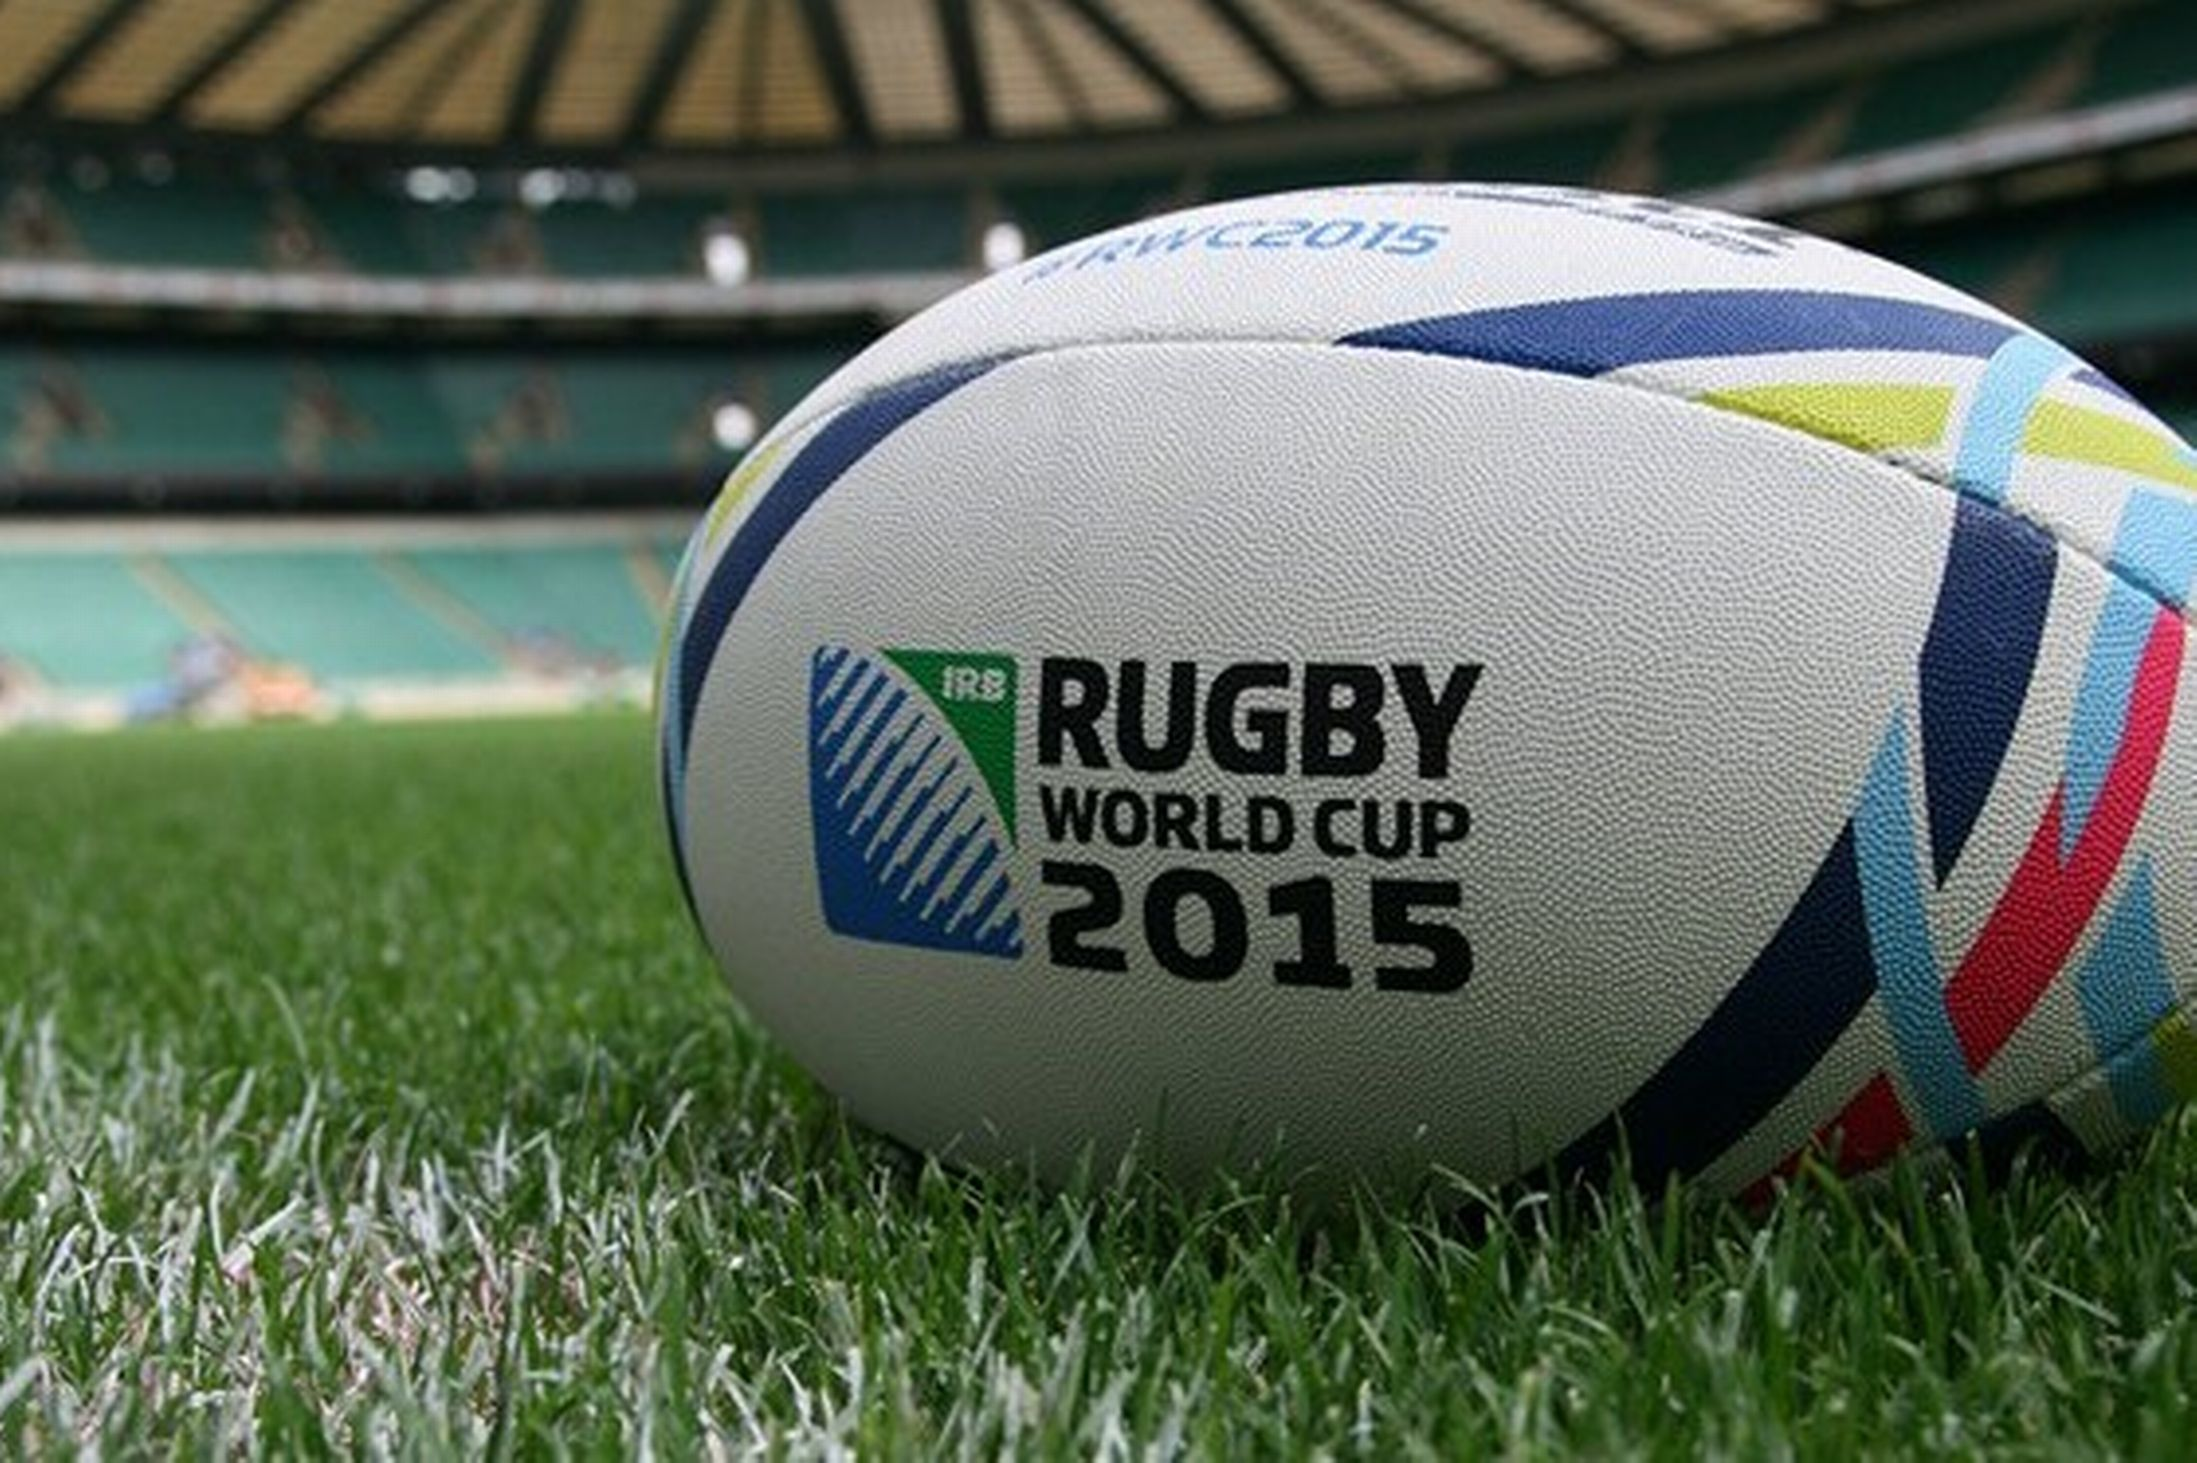 Are you ready for the Rugby World Cup kick off?